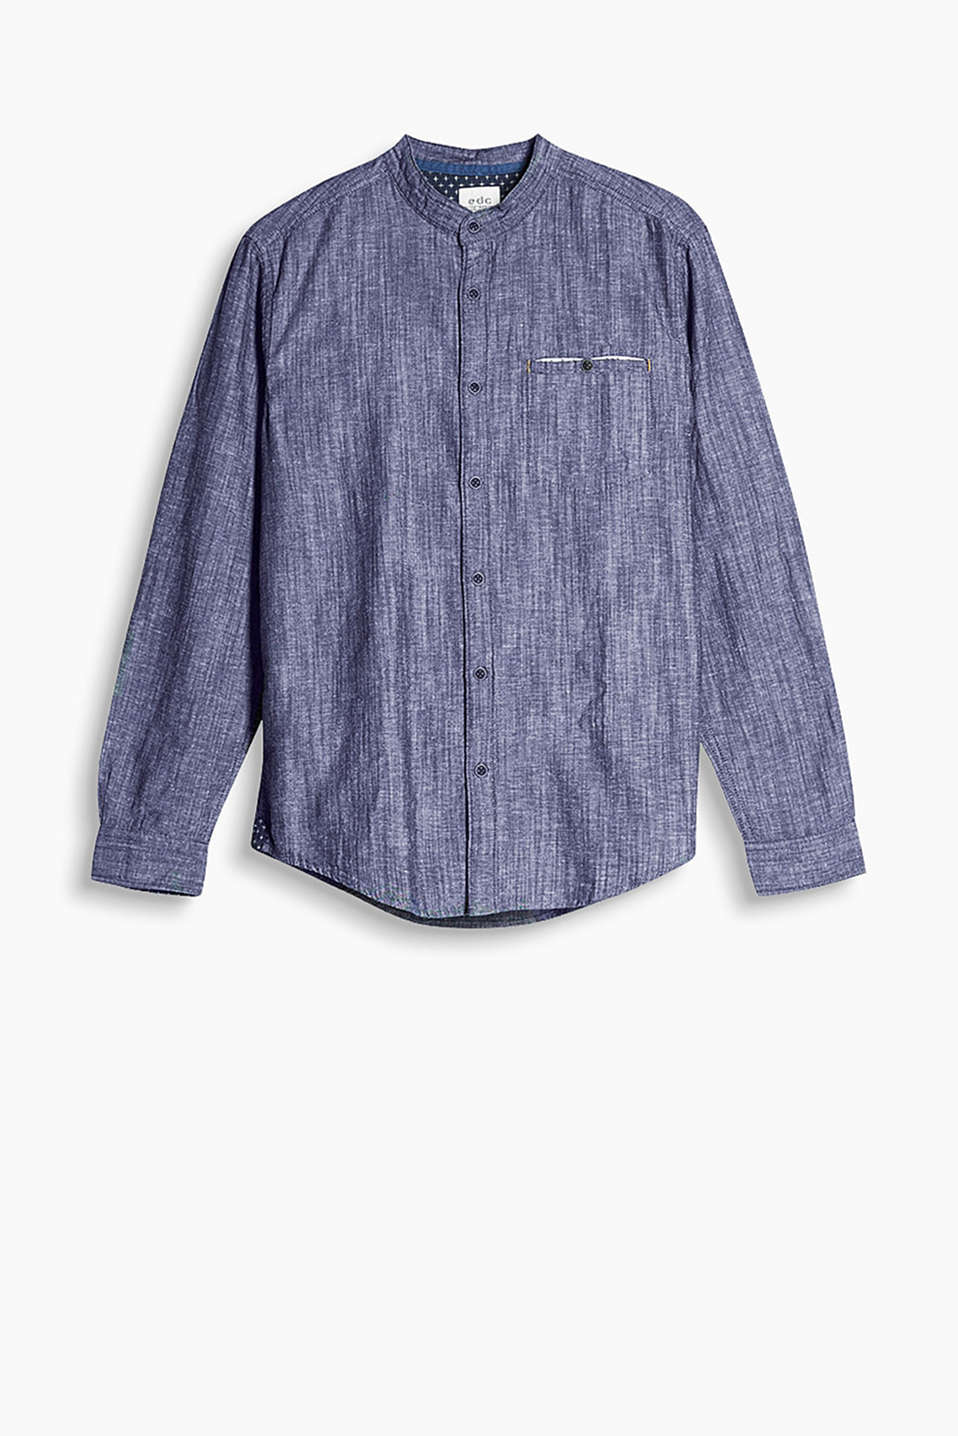 Granddad shirt with a button-down breast pocket, made from soft cotton chambray with a melange finish